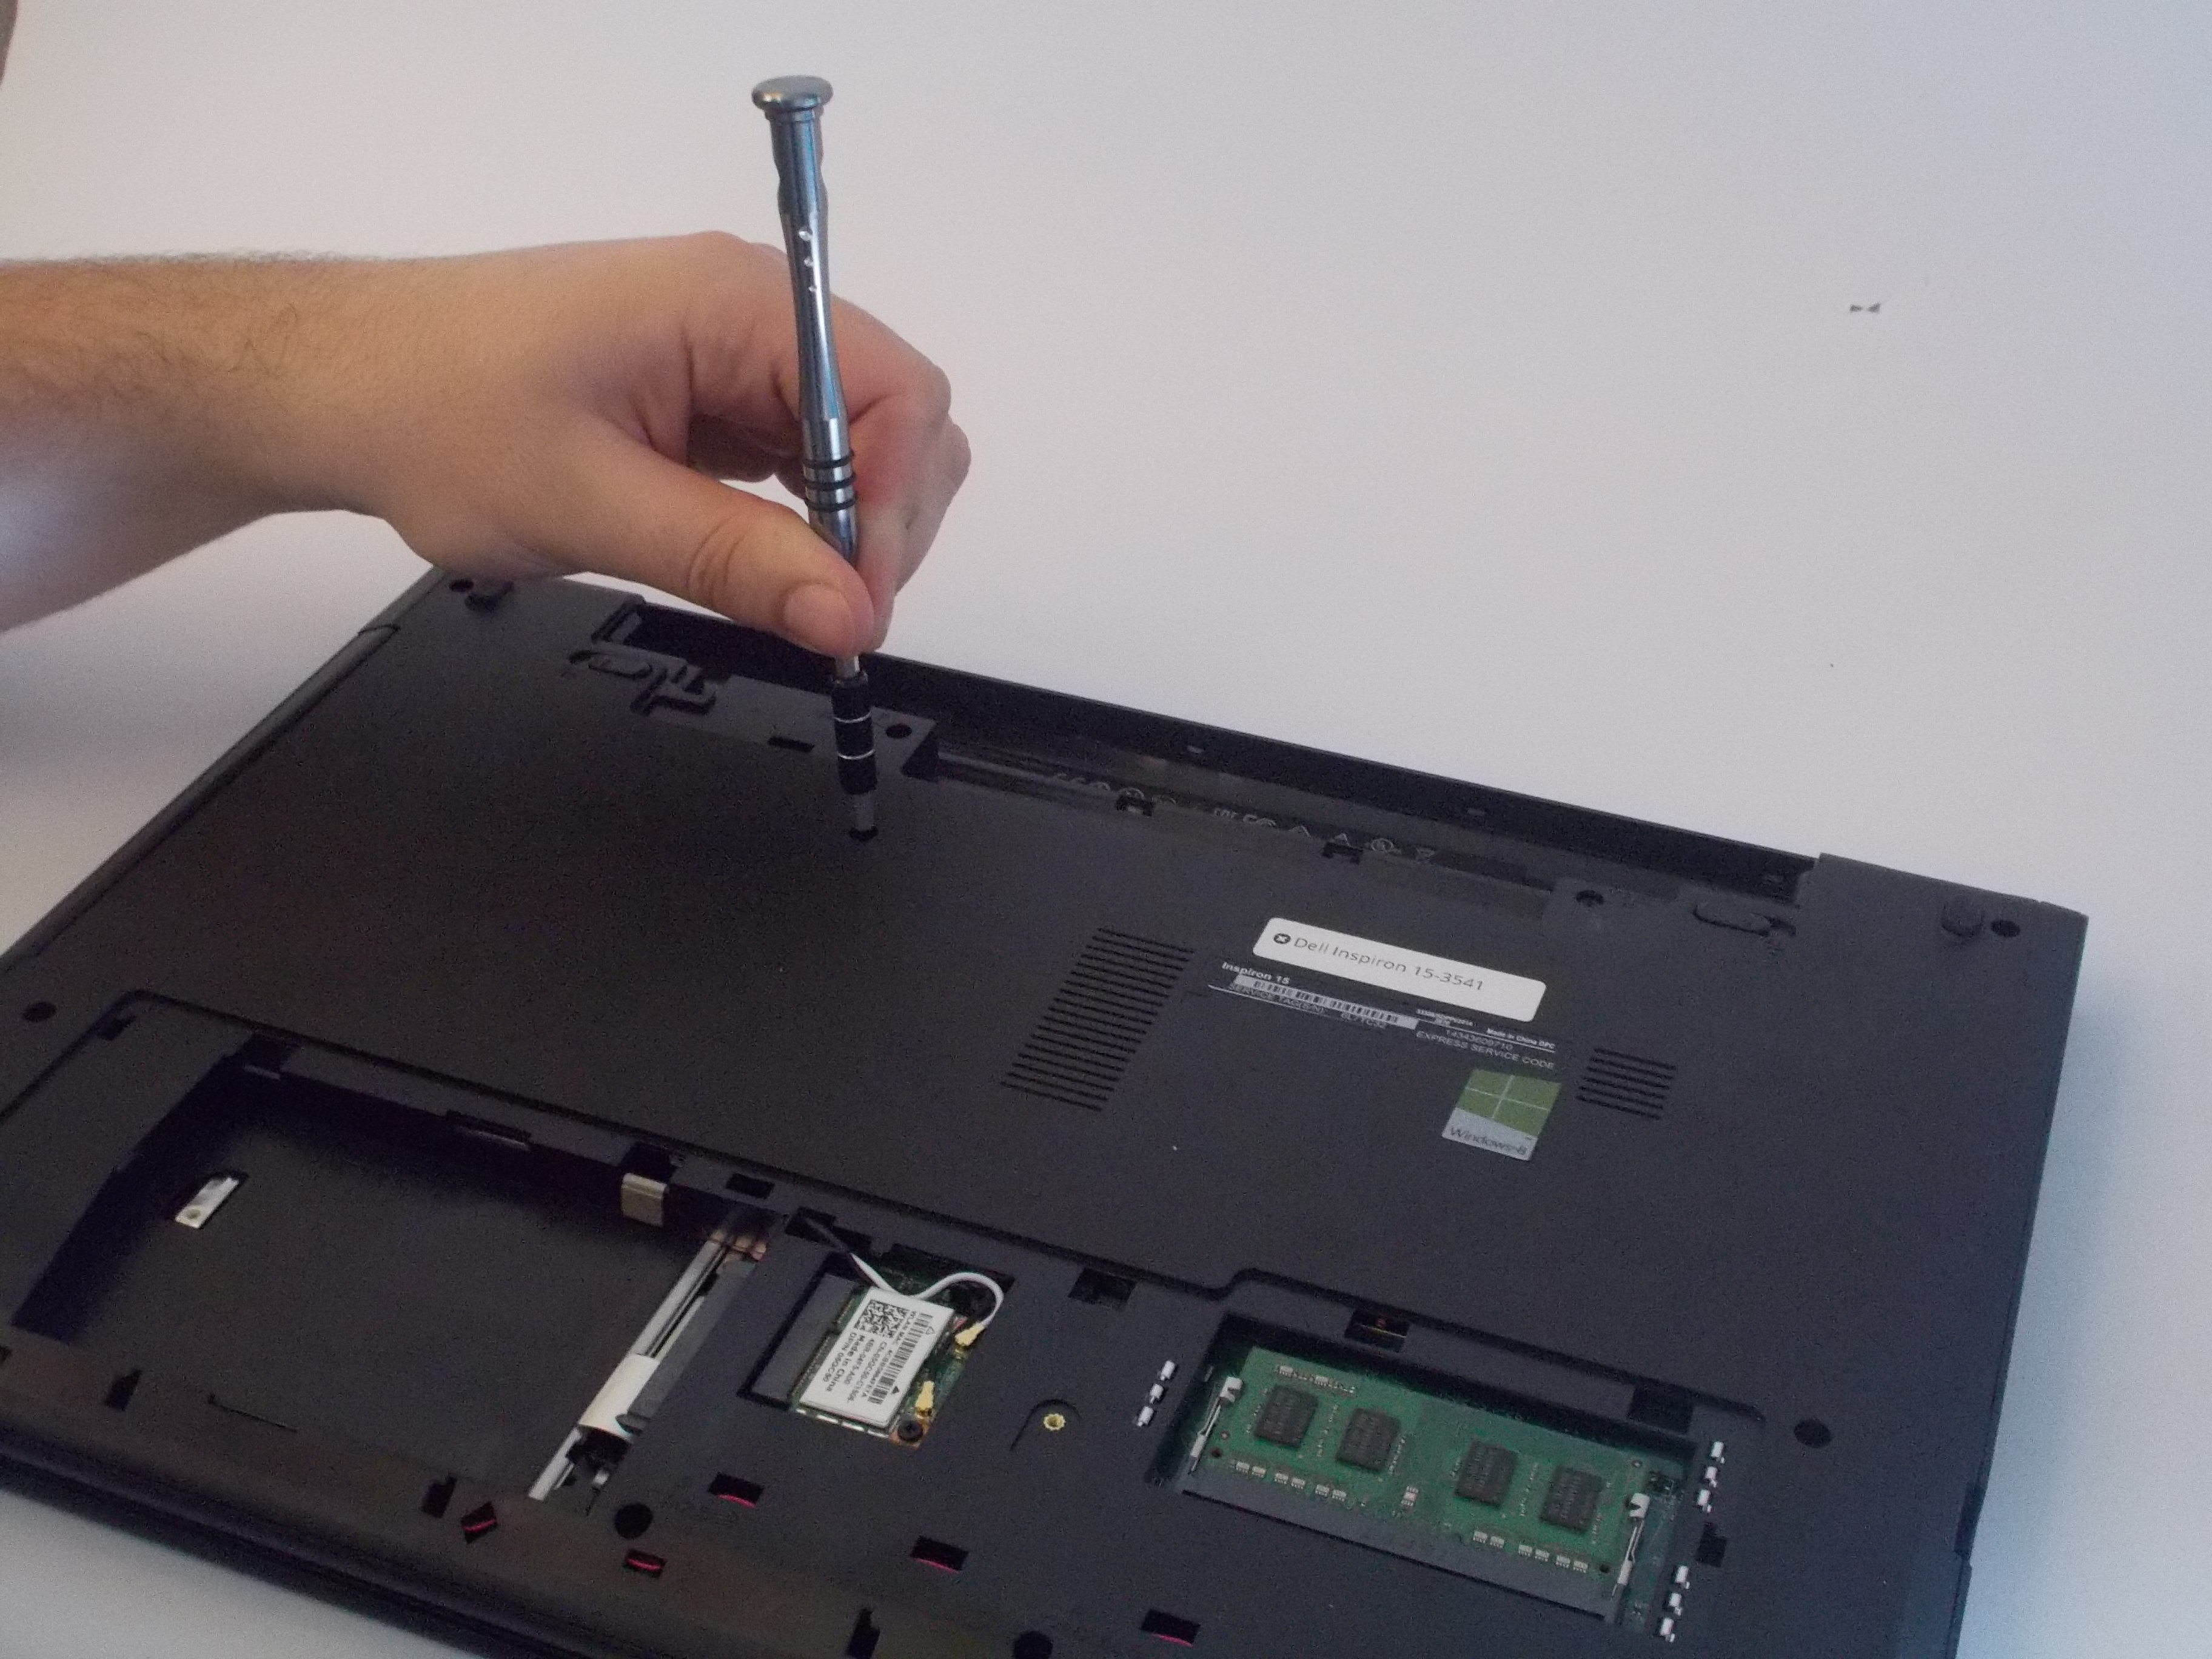 Dell Inspiron 15 Optical Drive Replacement Ifixit Repair Guide 3576